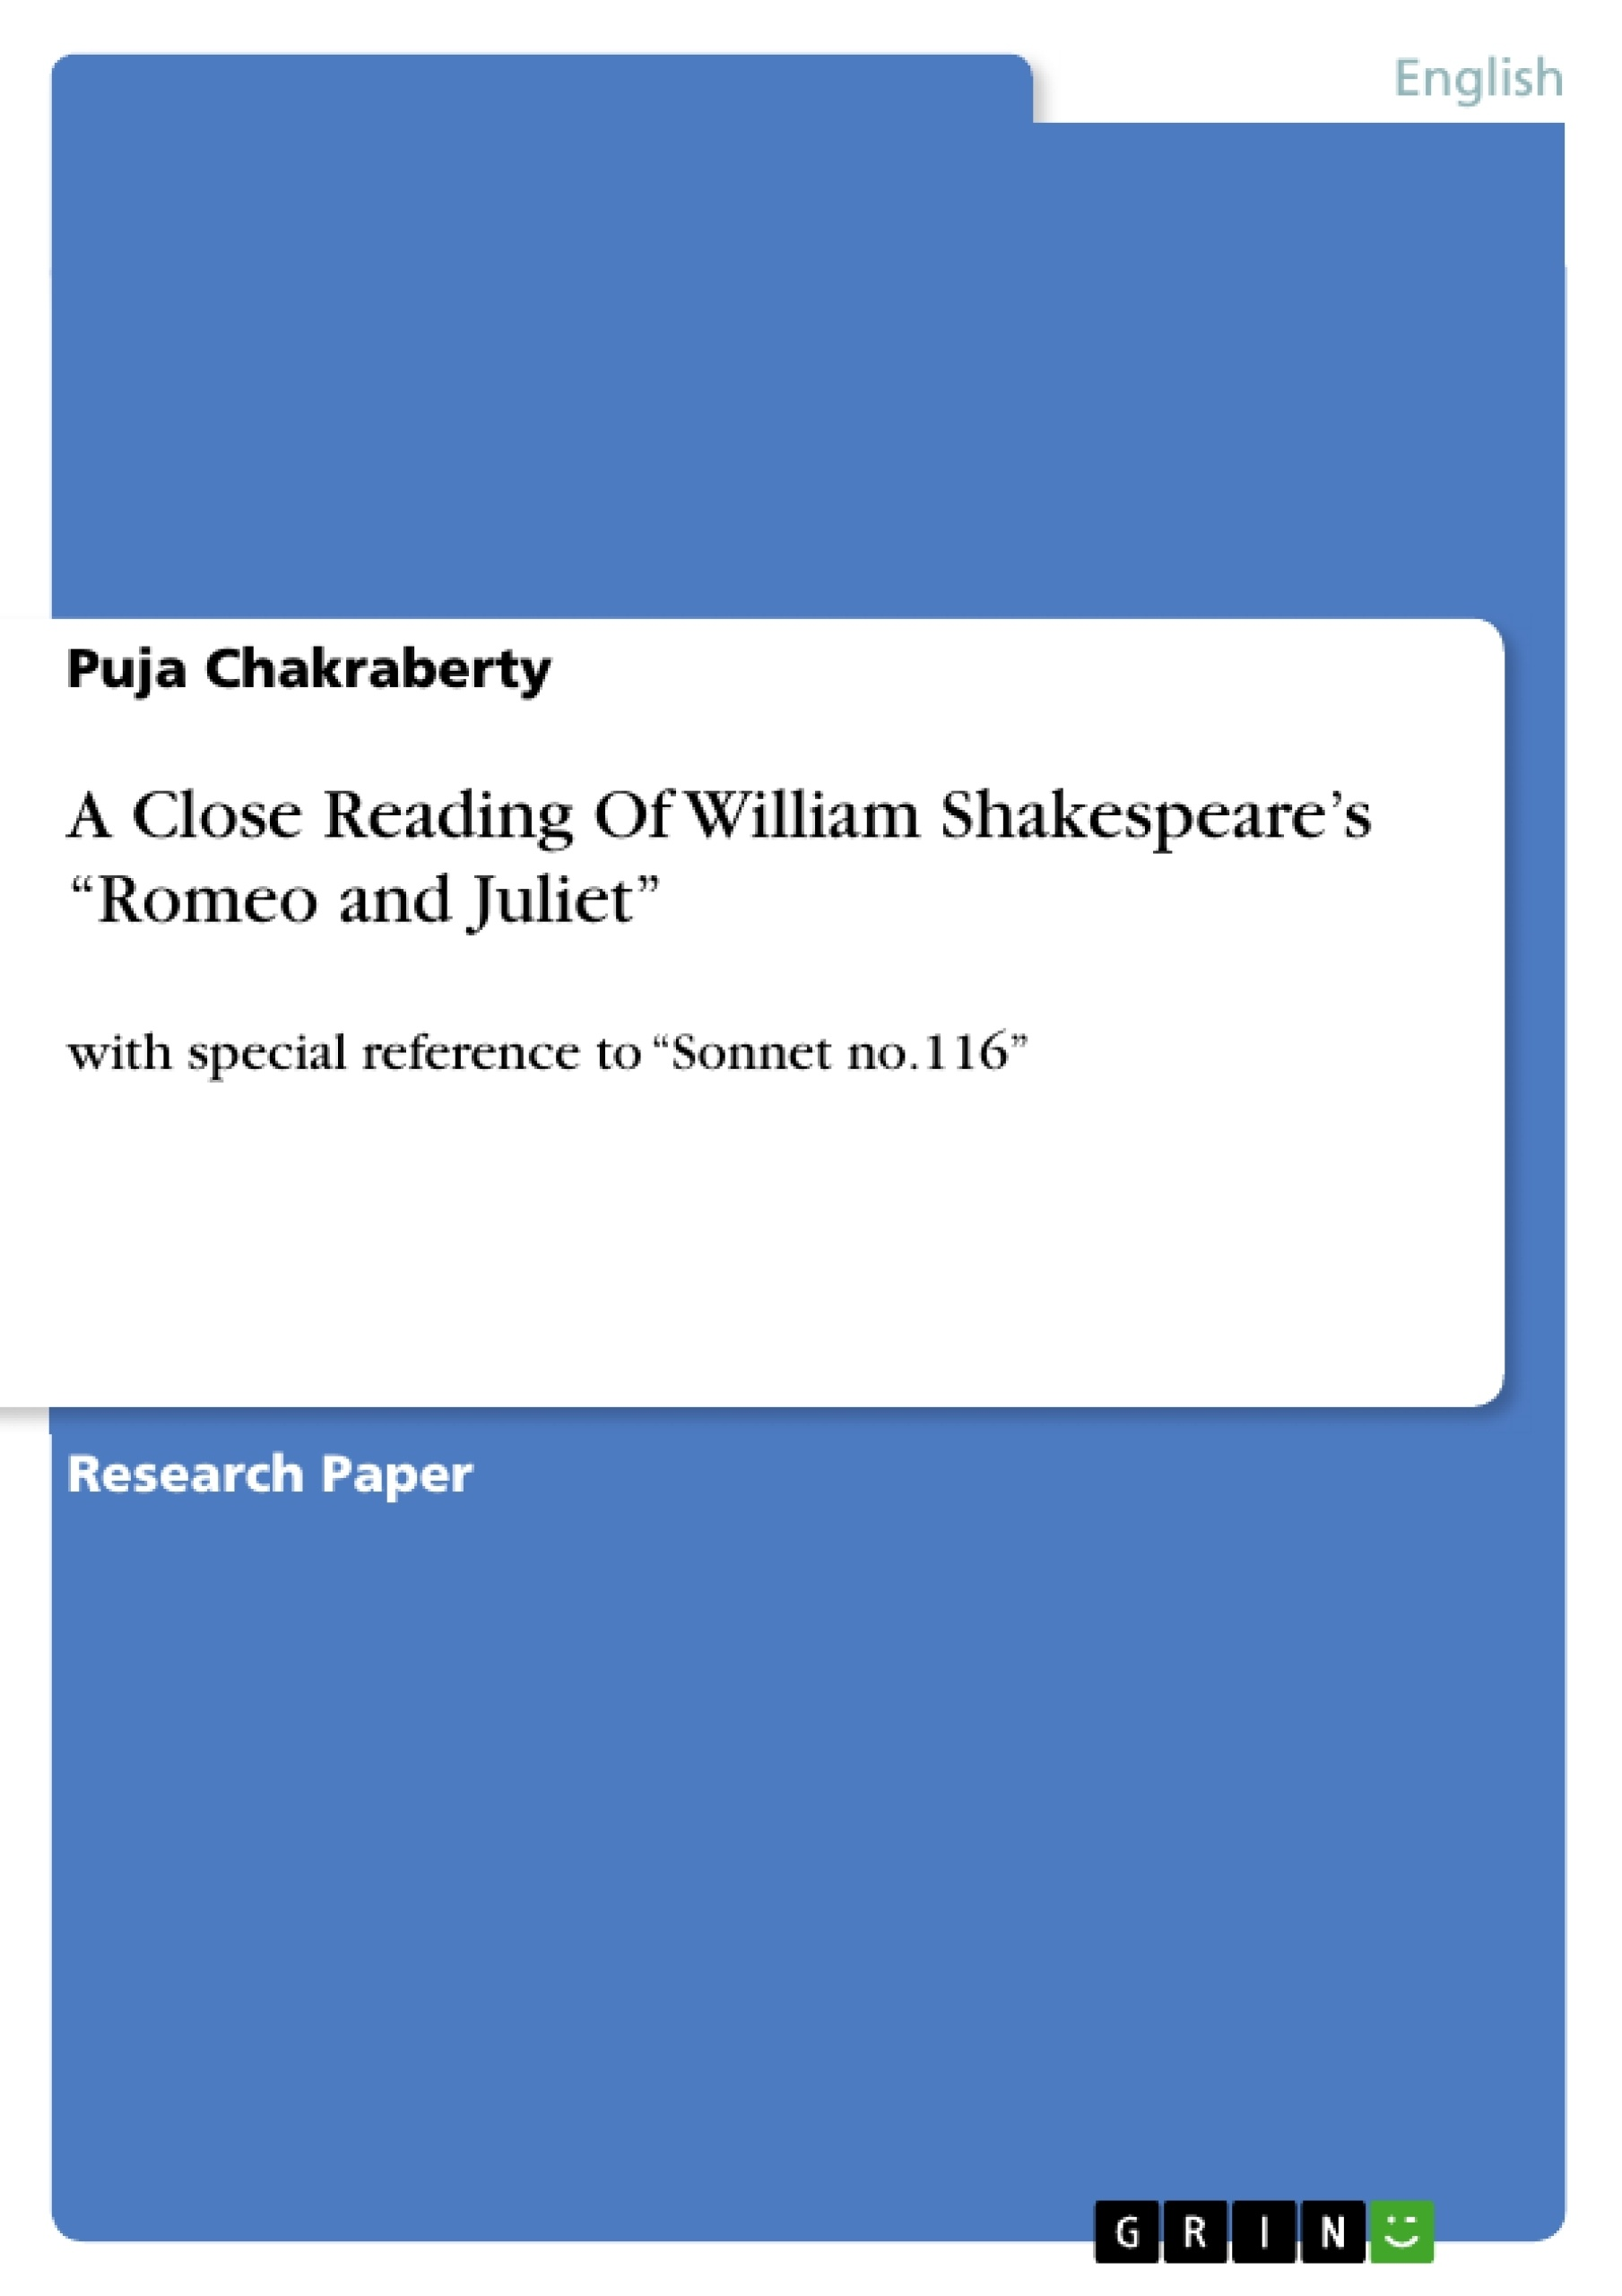 """Title: A Close Reading Of William Shakespeare's """"Romeo and Juliet"""""""